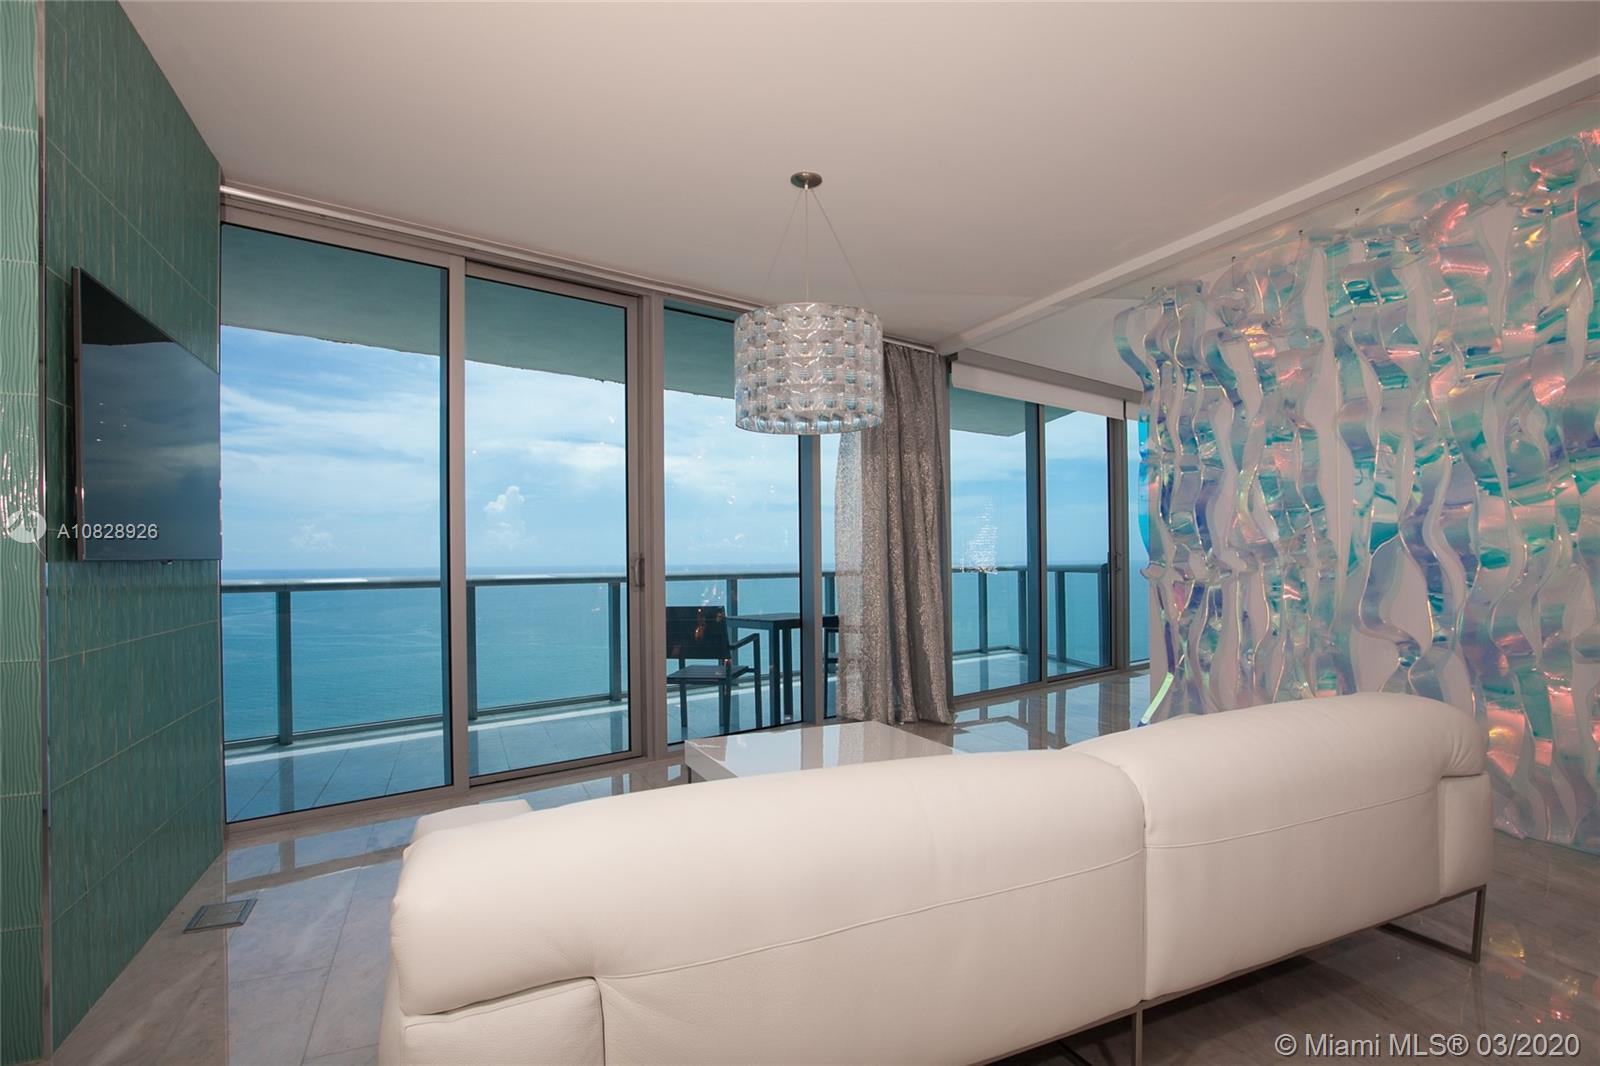 Luxurious oceanfront residence with breath taking direct ocean views from every room. This model fea